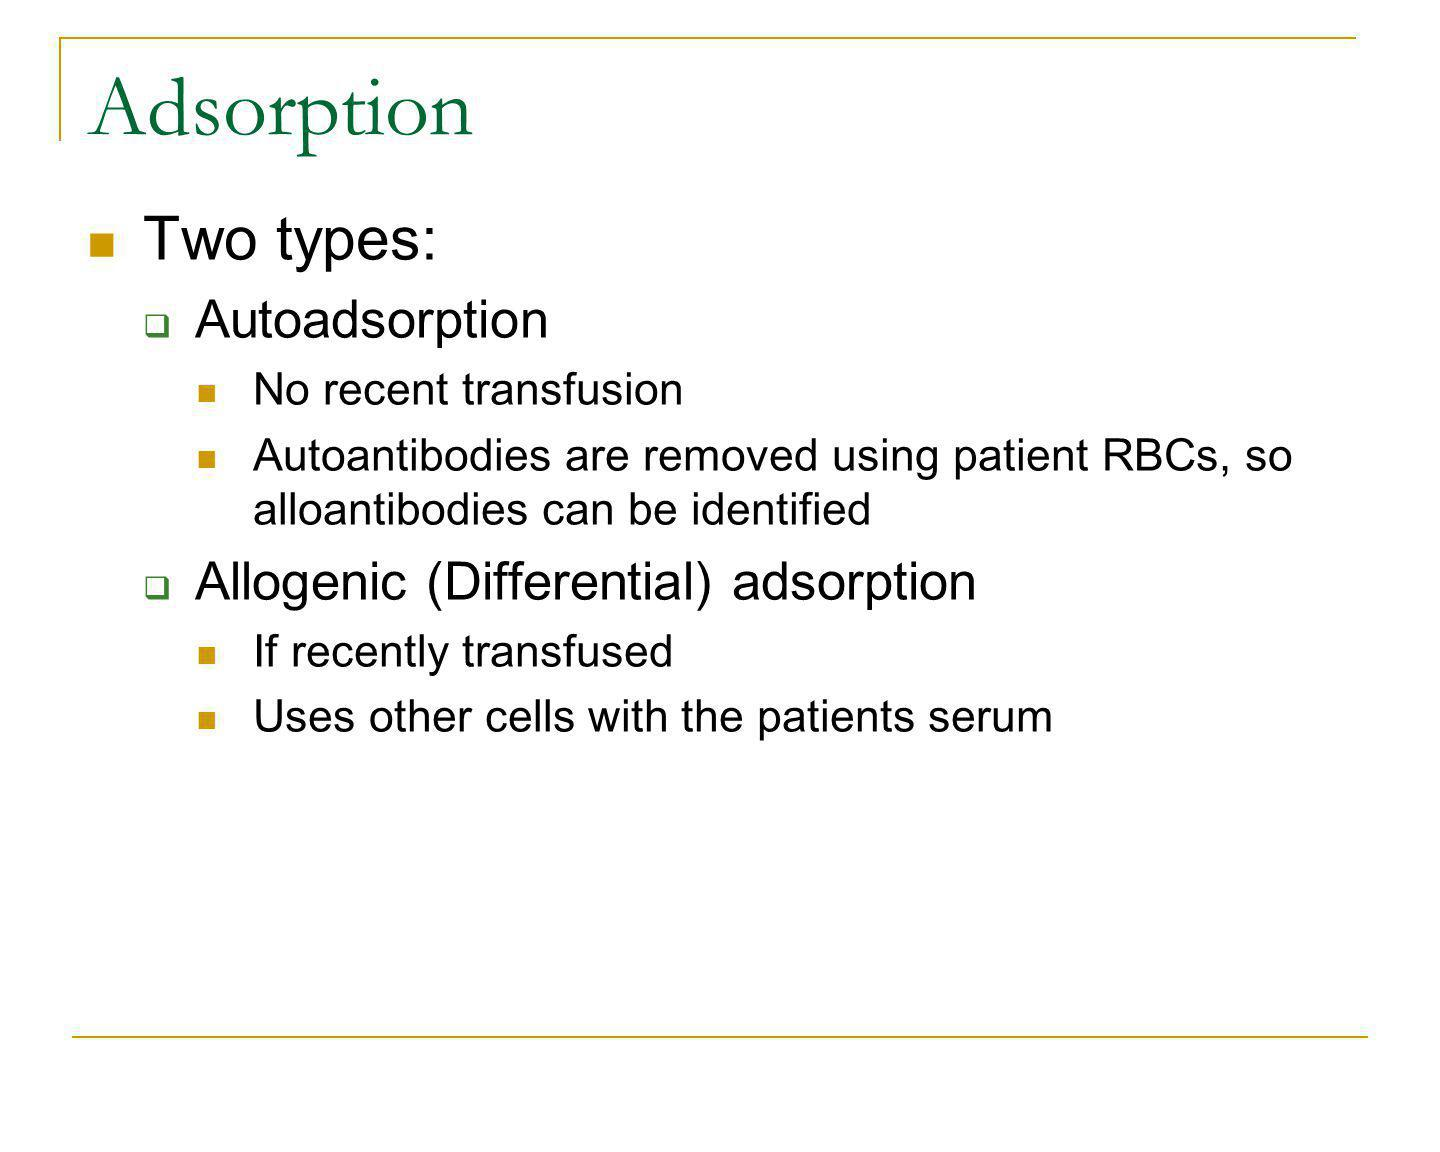 Adsorption Two types: Autoadsorption No recent transfusion Autoantibodies are removed using patient RBCs, so alloantibodies can be identified Allogeni